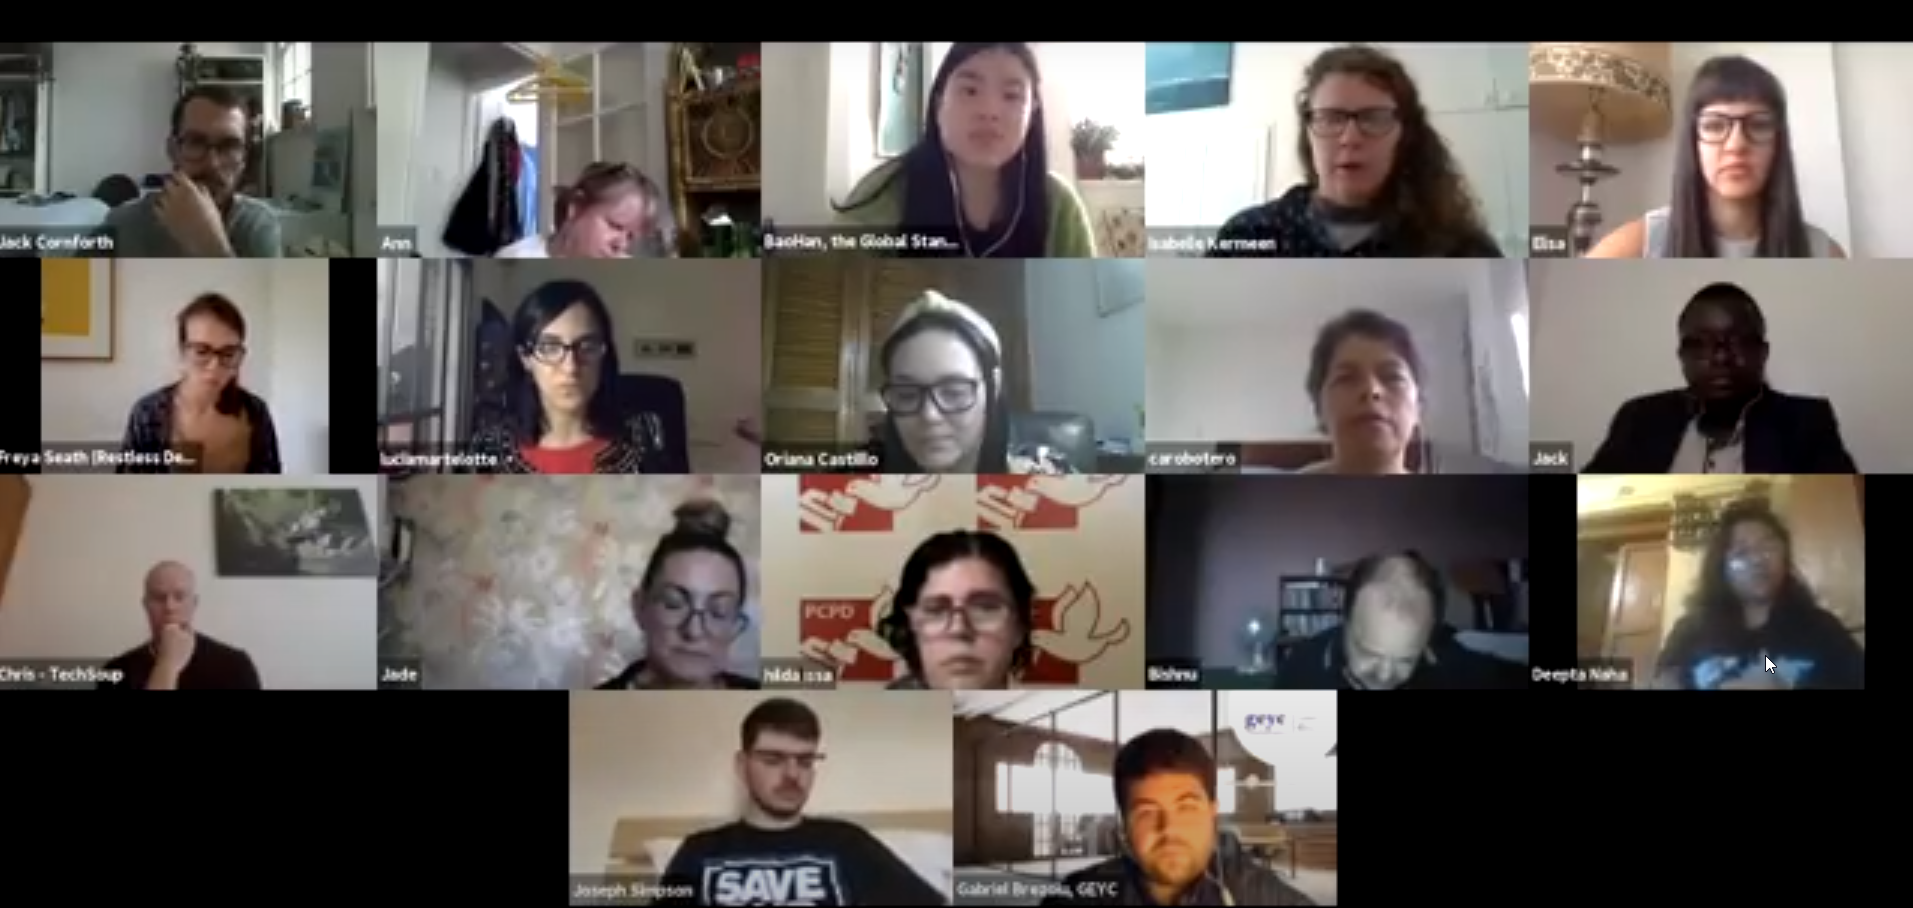 Participants in a zoom meeting